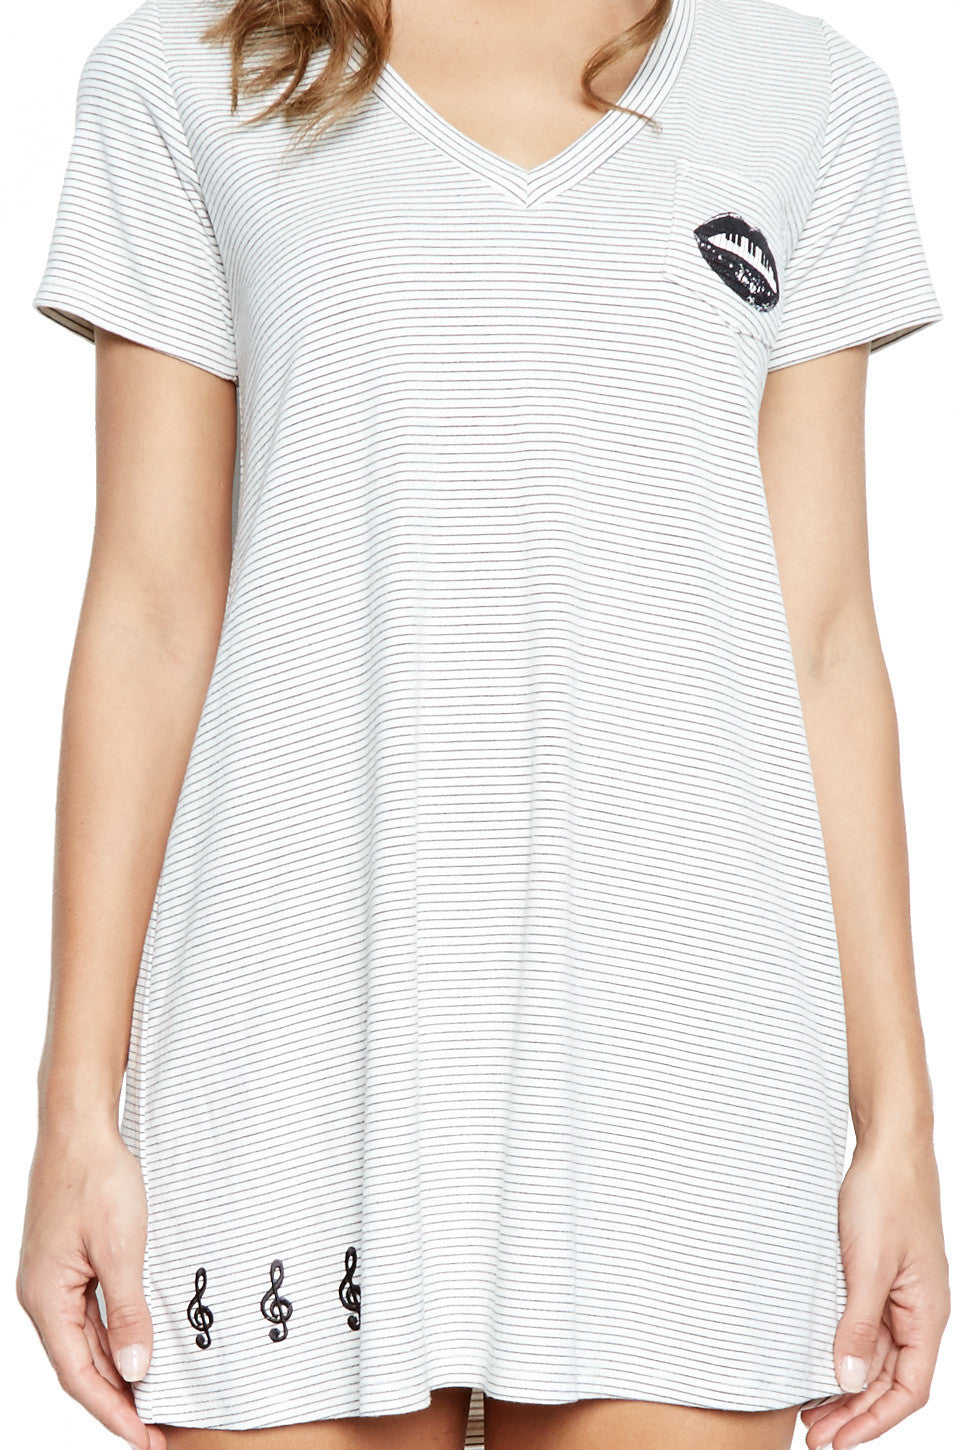 Lauren Moshi Women's Nessa SML Piano Mouth V-Neck Dress w/Pocket & Patches - White Black Stripe